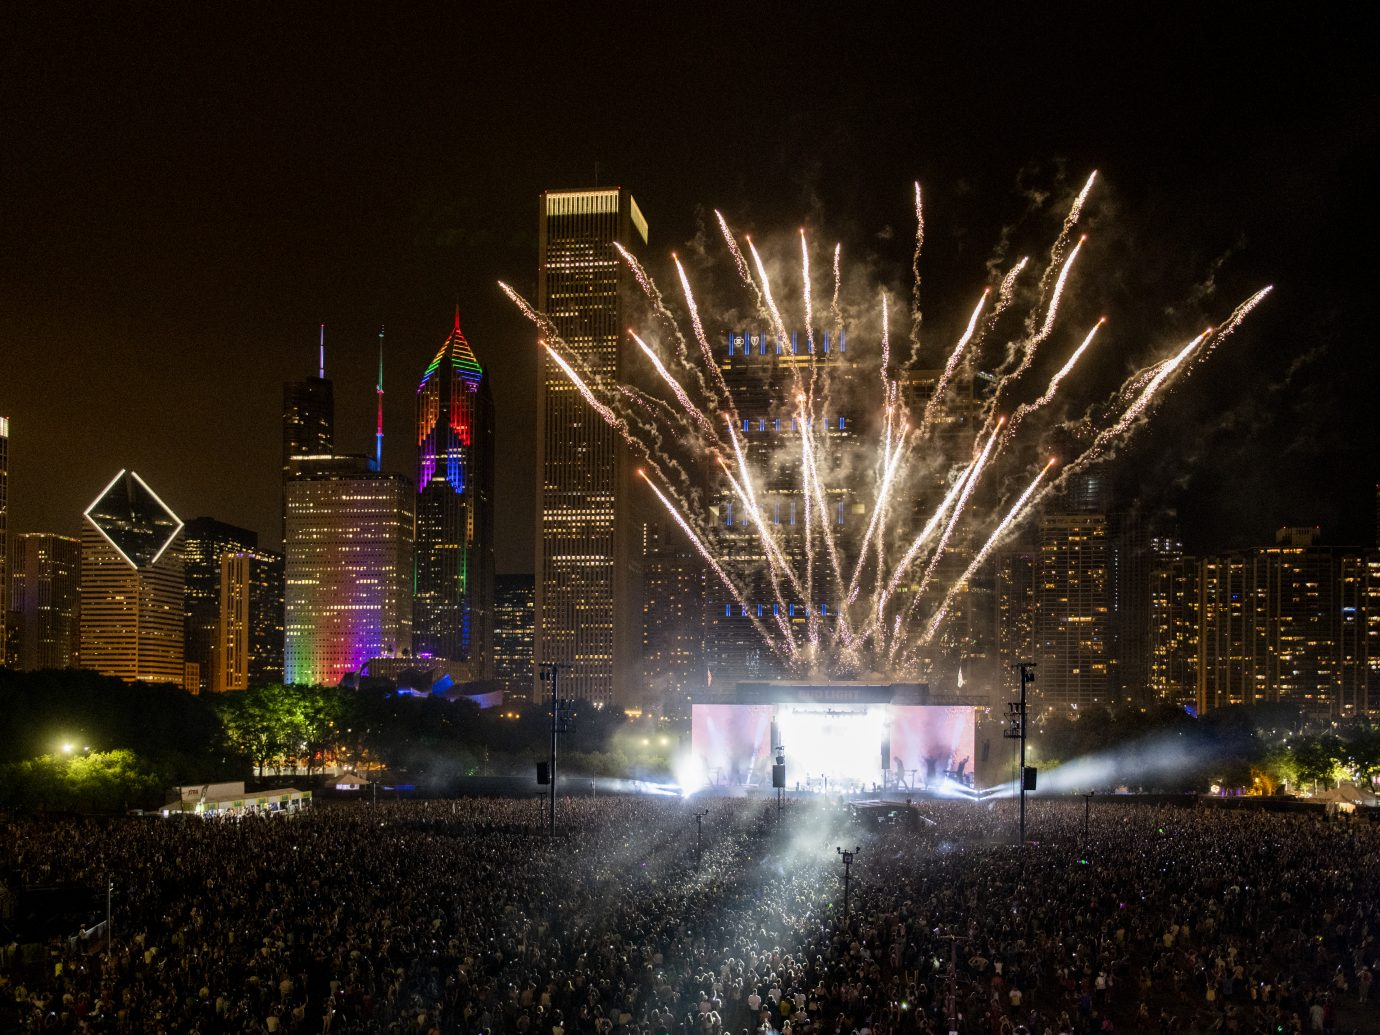 fireworks shooting from stage with Chicago in background